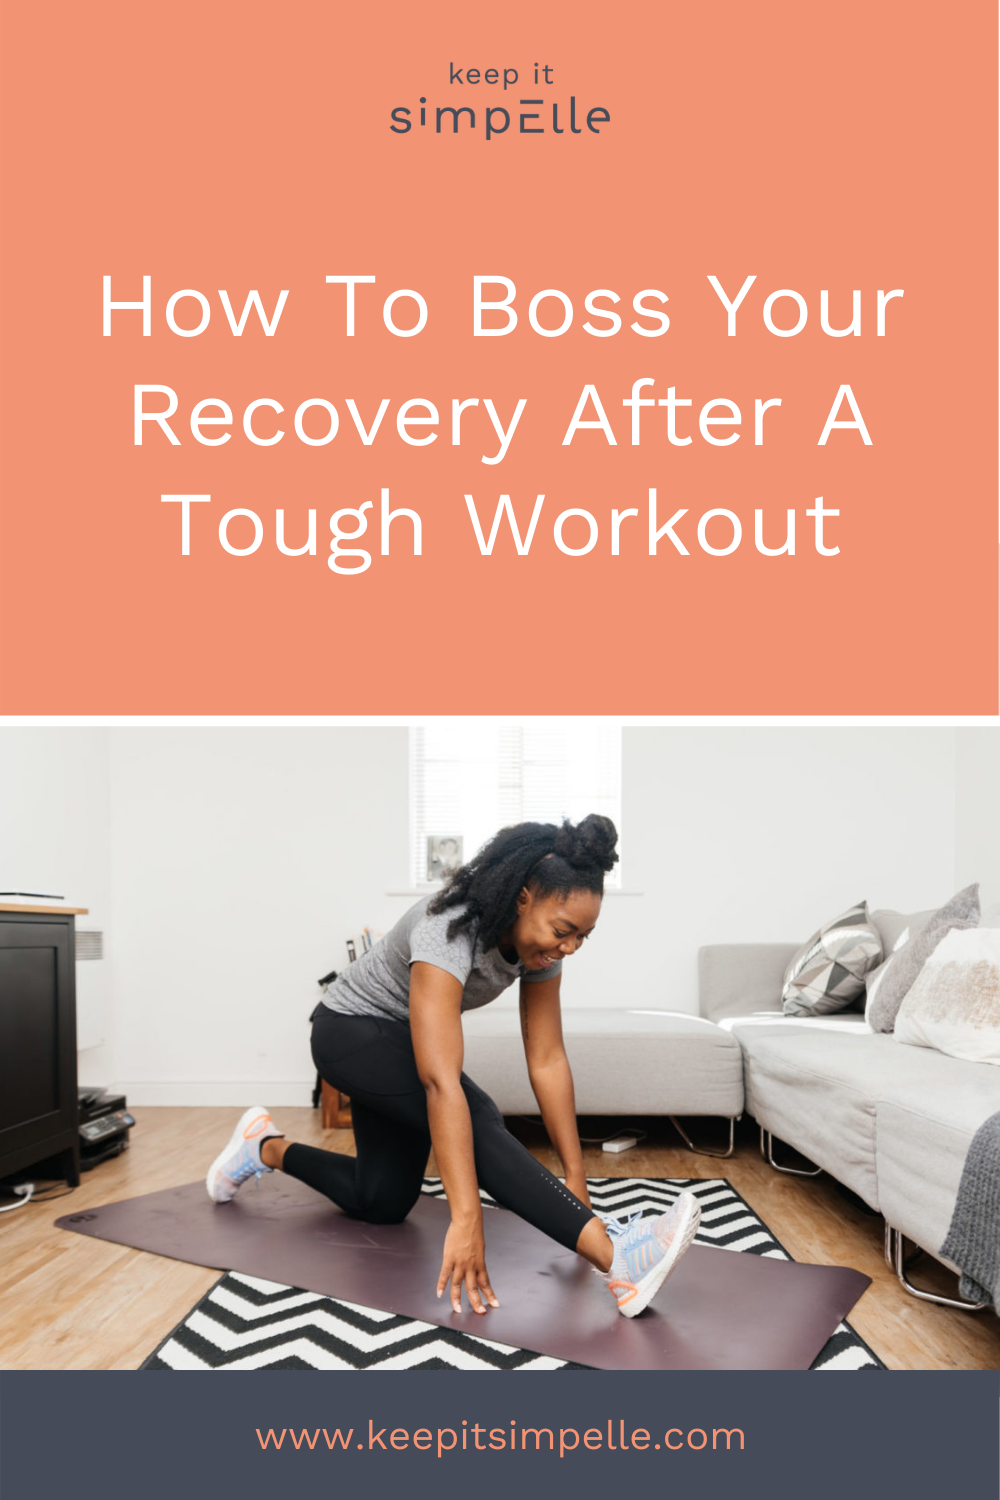 Pinterest Pin for How To Boss Your Recovery After A Tough Workout Blog Post